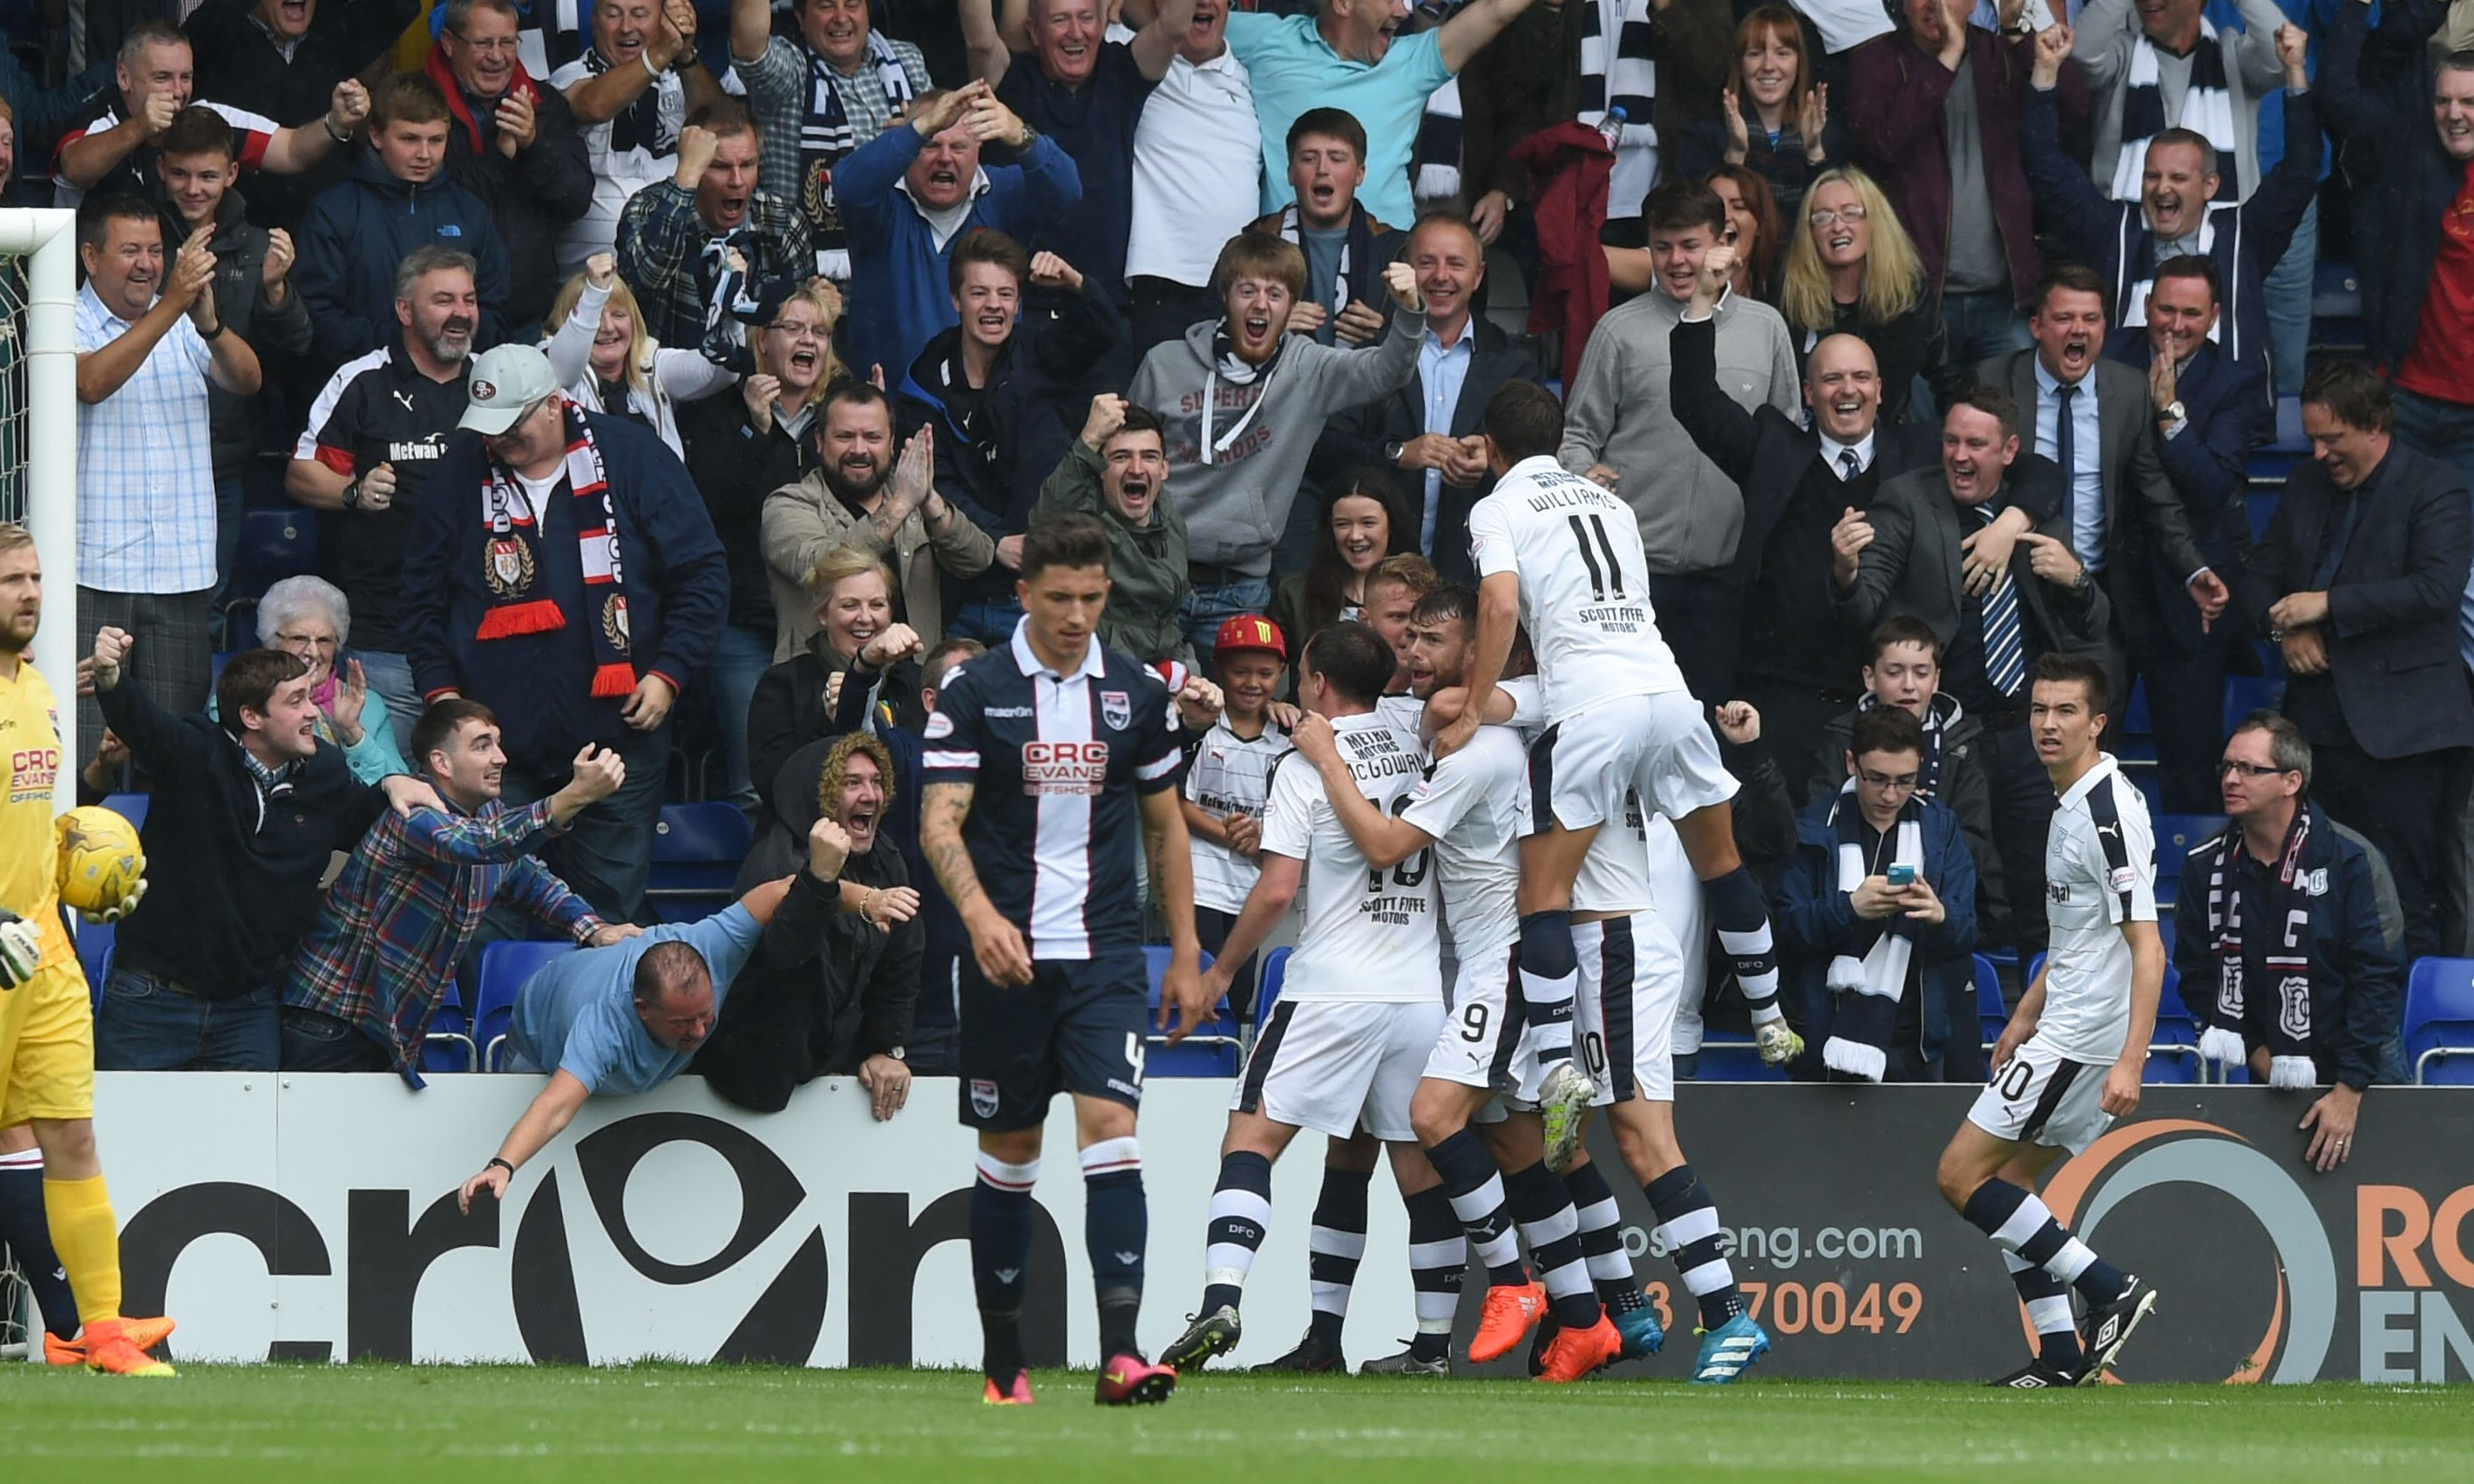 The Dundee players celebrate the Rory Loy opener.